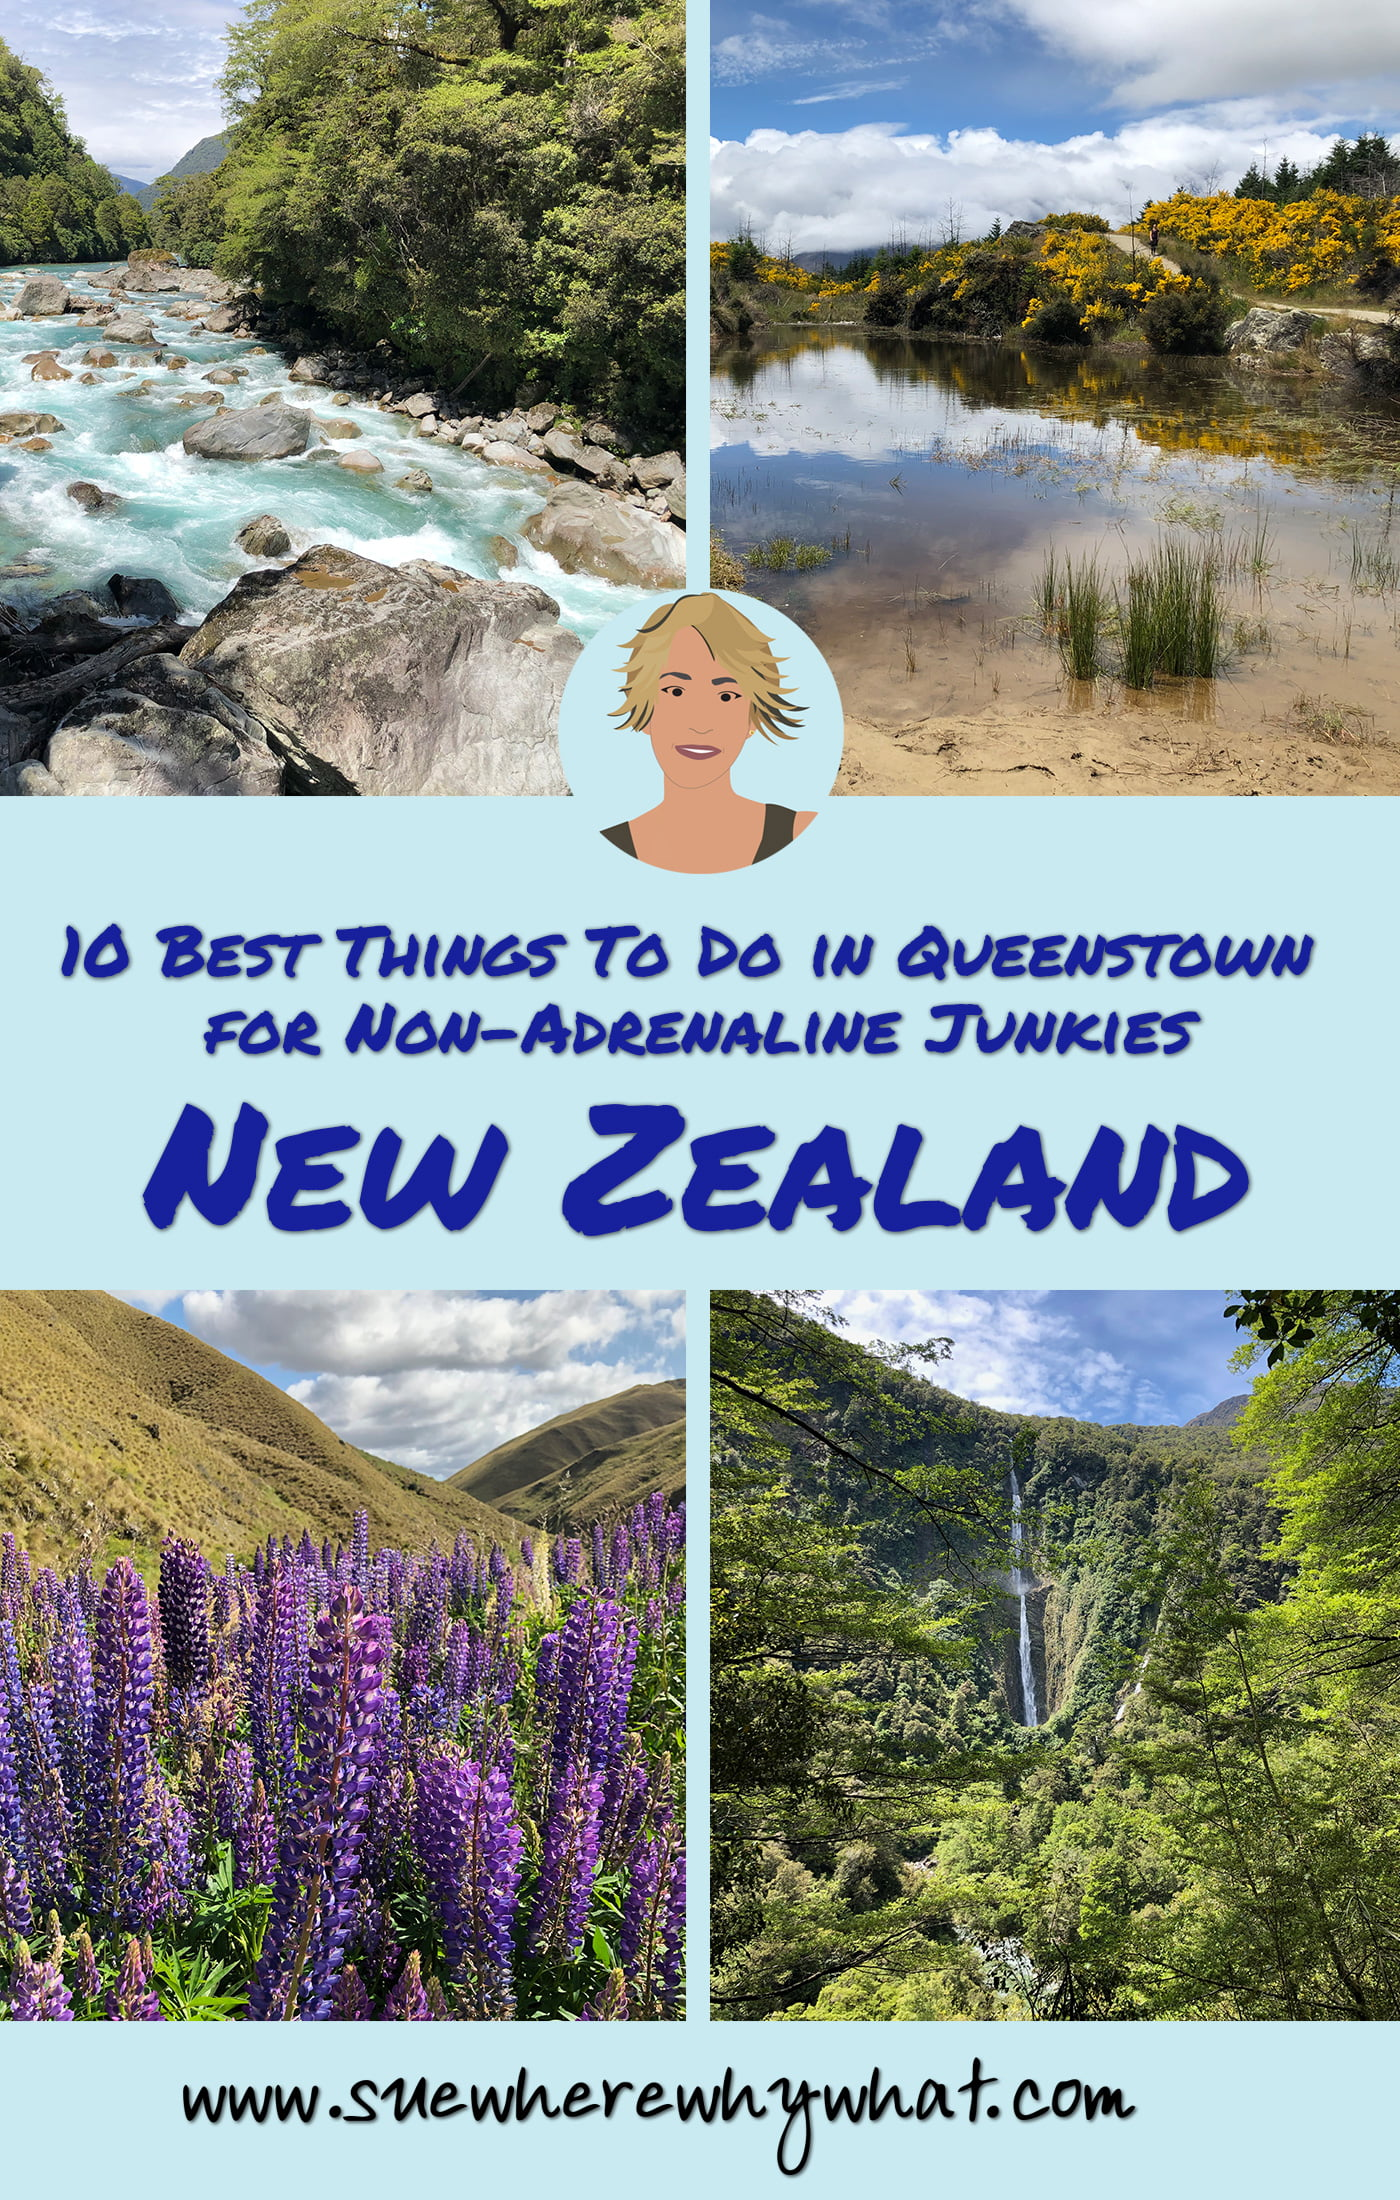 Top 10 Things to do in Queenstown for Non-adrenaline junkies. Queenstown is renowned for being the Adrenaline Capital of the World, but what can you do if you are not really into throwing yourself off a bridge or out of a plane? Here is my list of the 10 best things to do in Queenstown for Non-adrenaline junkies! Includes Glenorchy & Kinloch, wine tour, hiking Queenstown Hill Trail, Skyline Gondola, trips to Milford Sound & Wanaka & loads of recommendations for bars & restaurants.